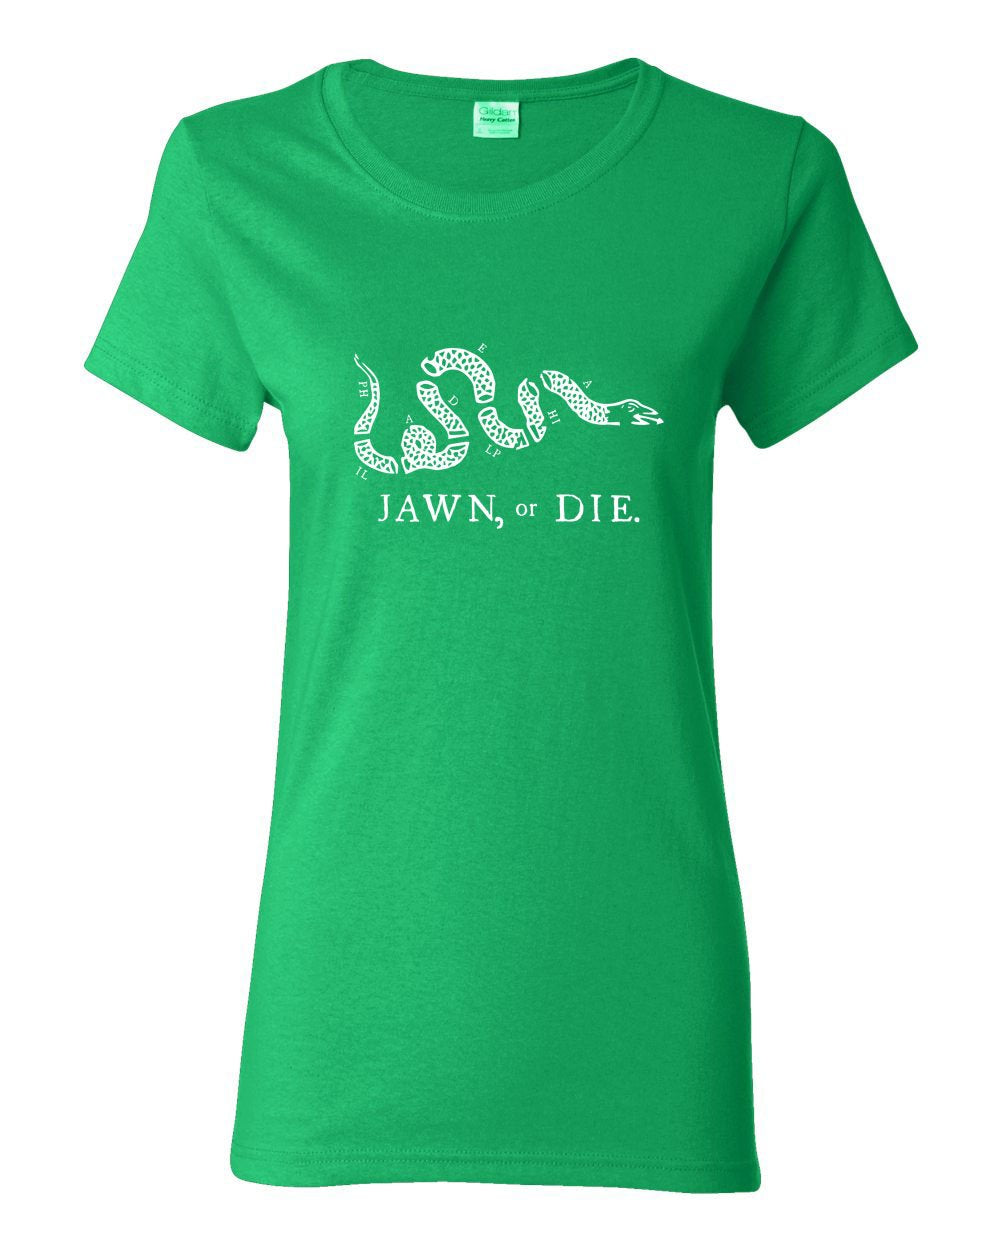 Jawn or Die White Ink LADIES Missy-Fit T-Shirt